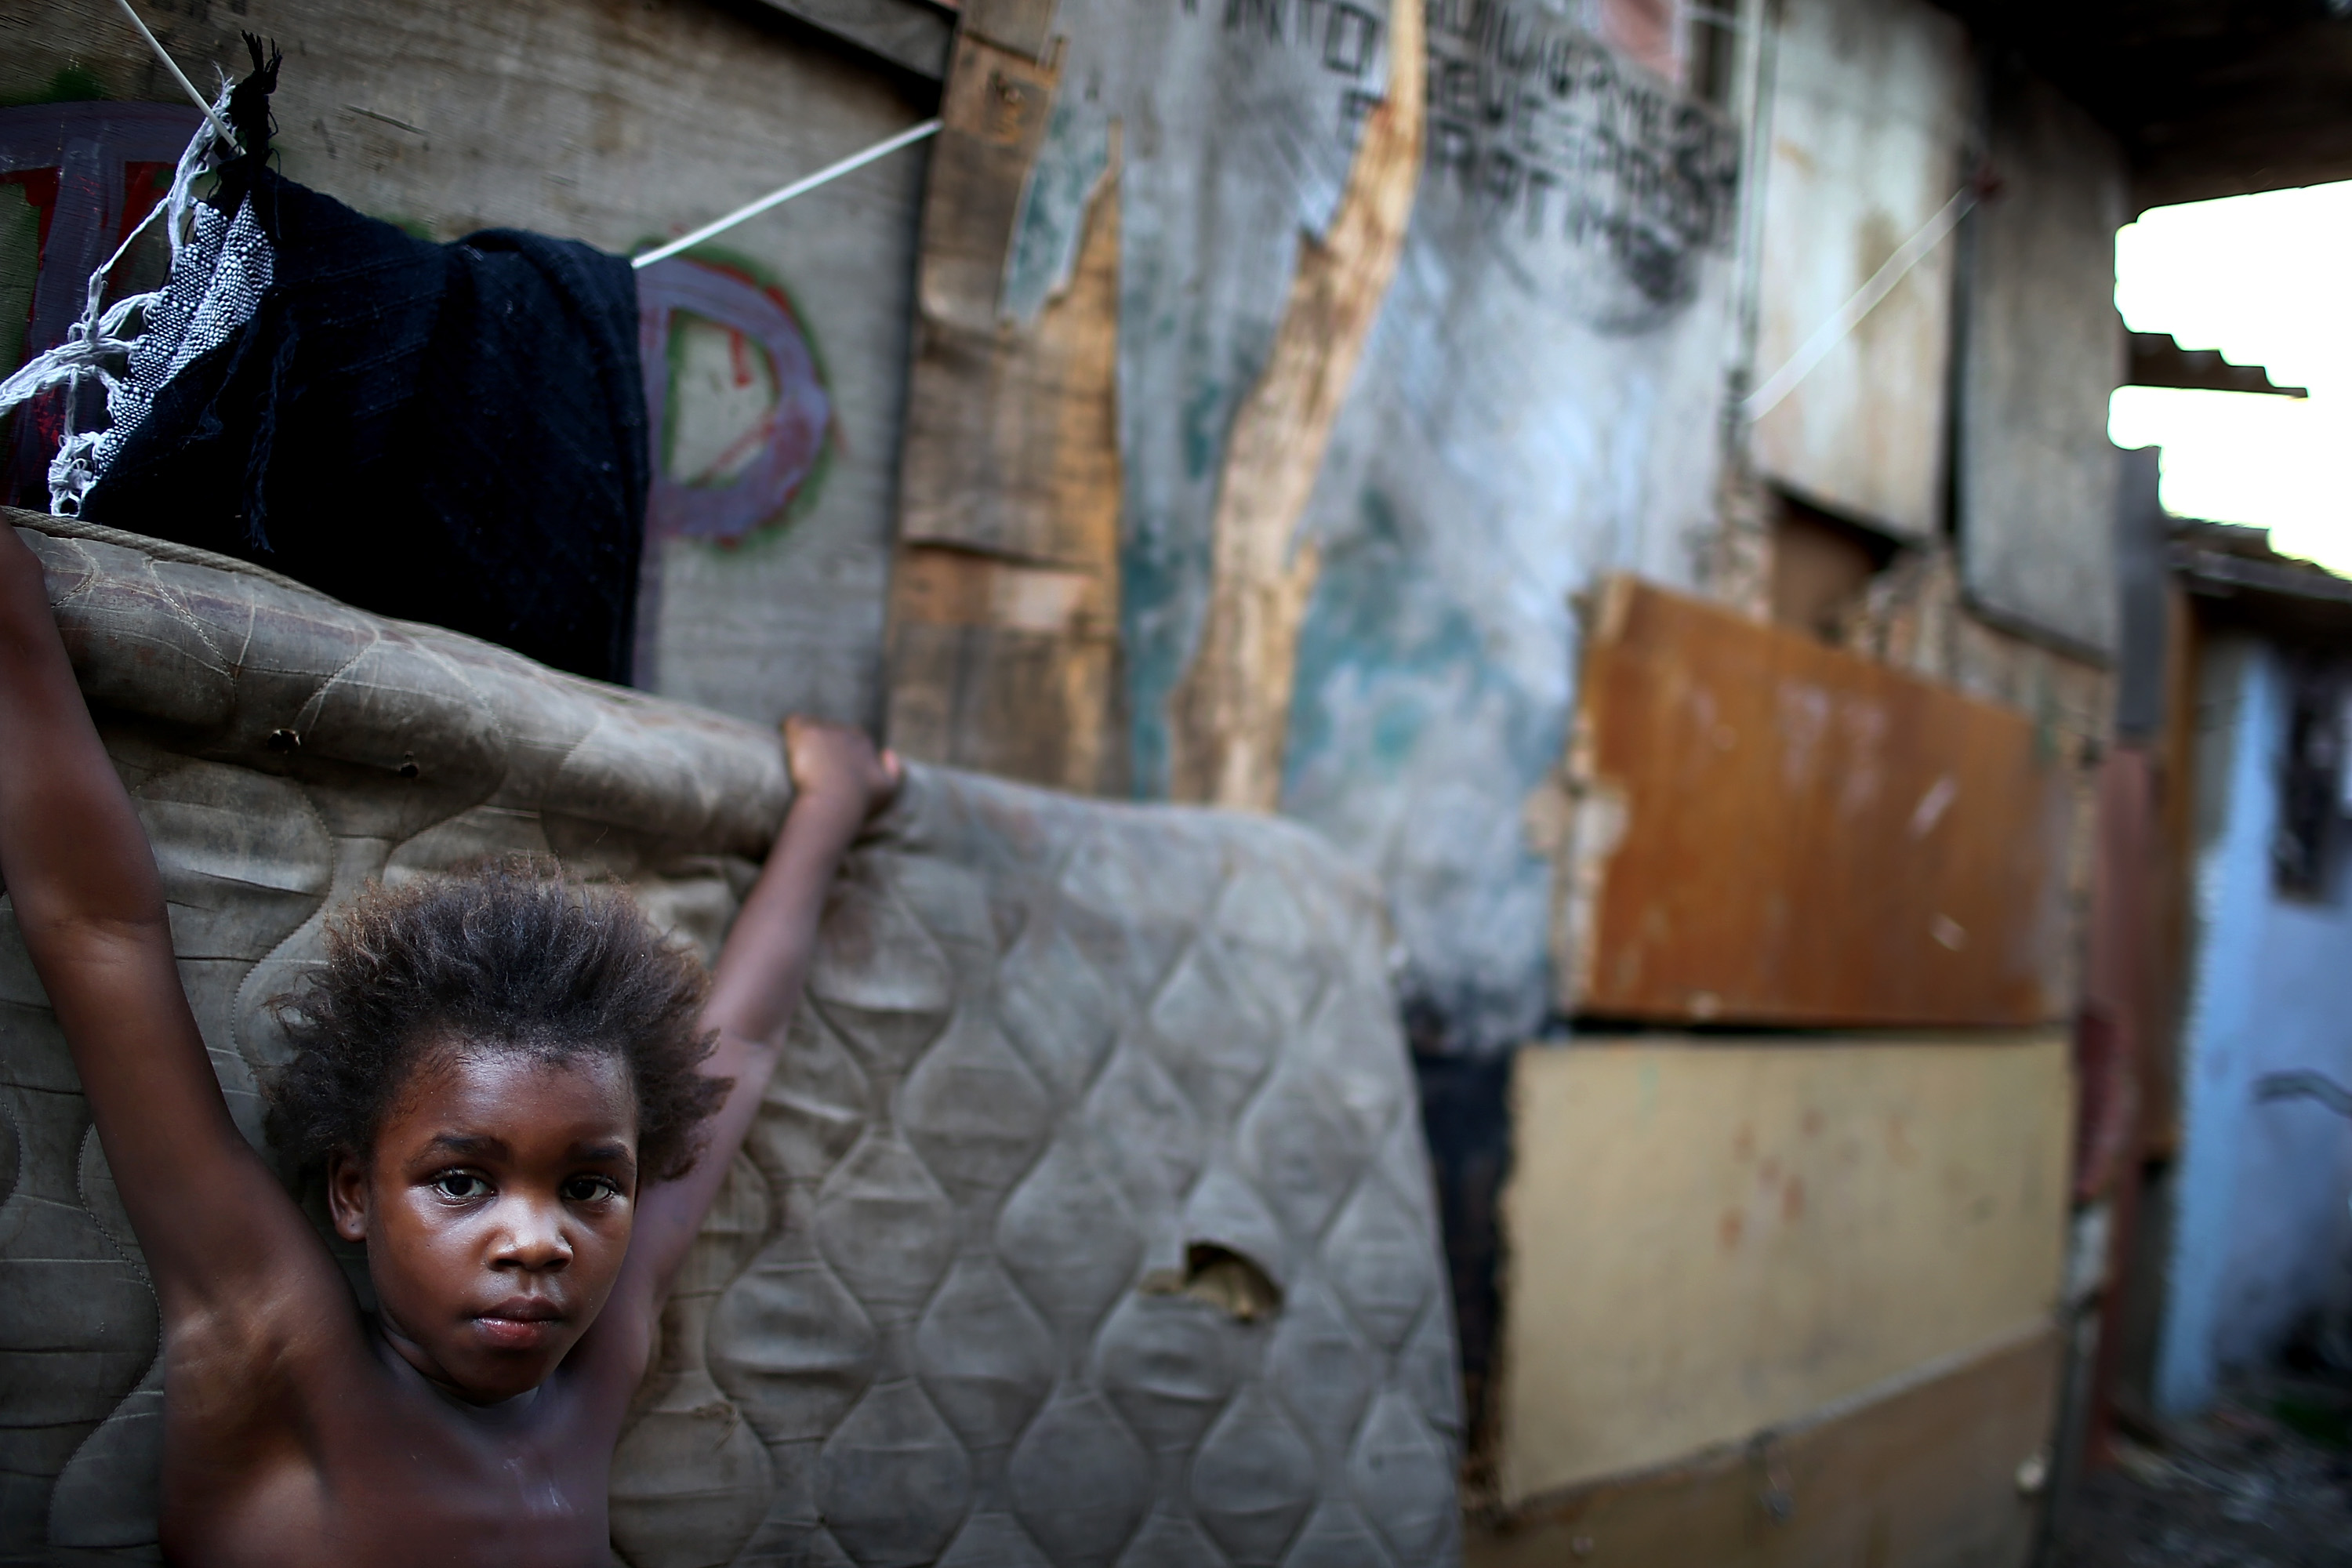 Resident Leiticia stands in an impoverished area in the unpacified Complexo da Mare slum complex, one of the largest favela complexes in Rio, on March 18, 2014 in Rio de Janeiro.